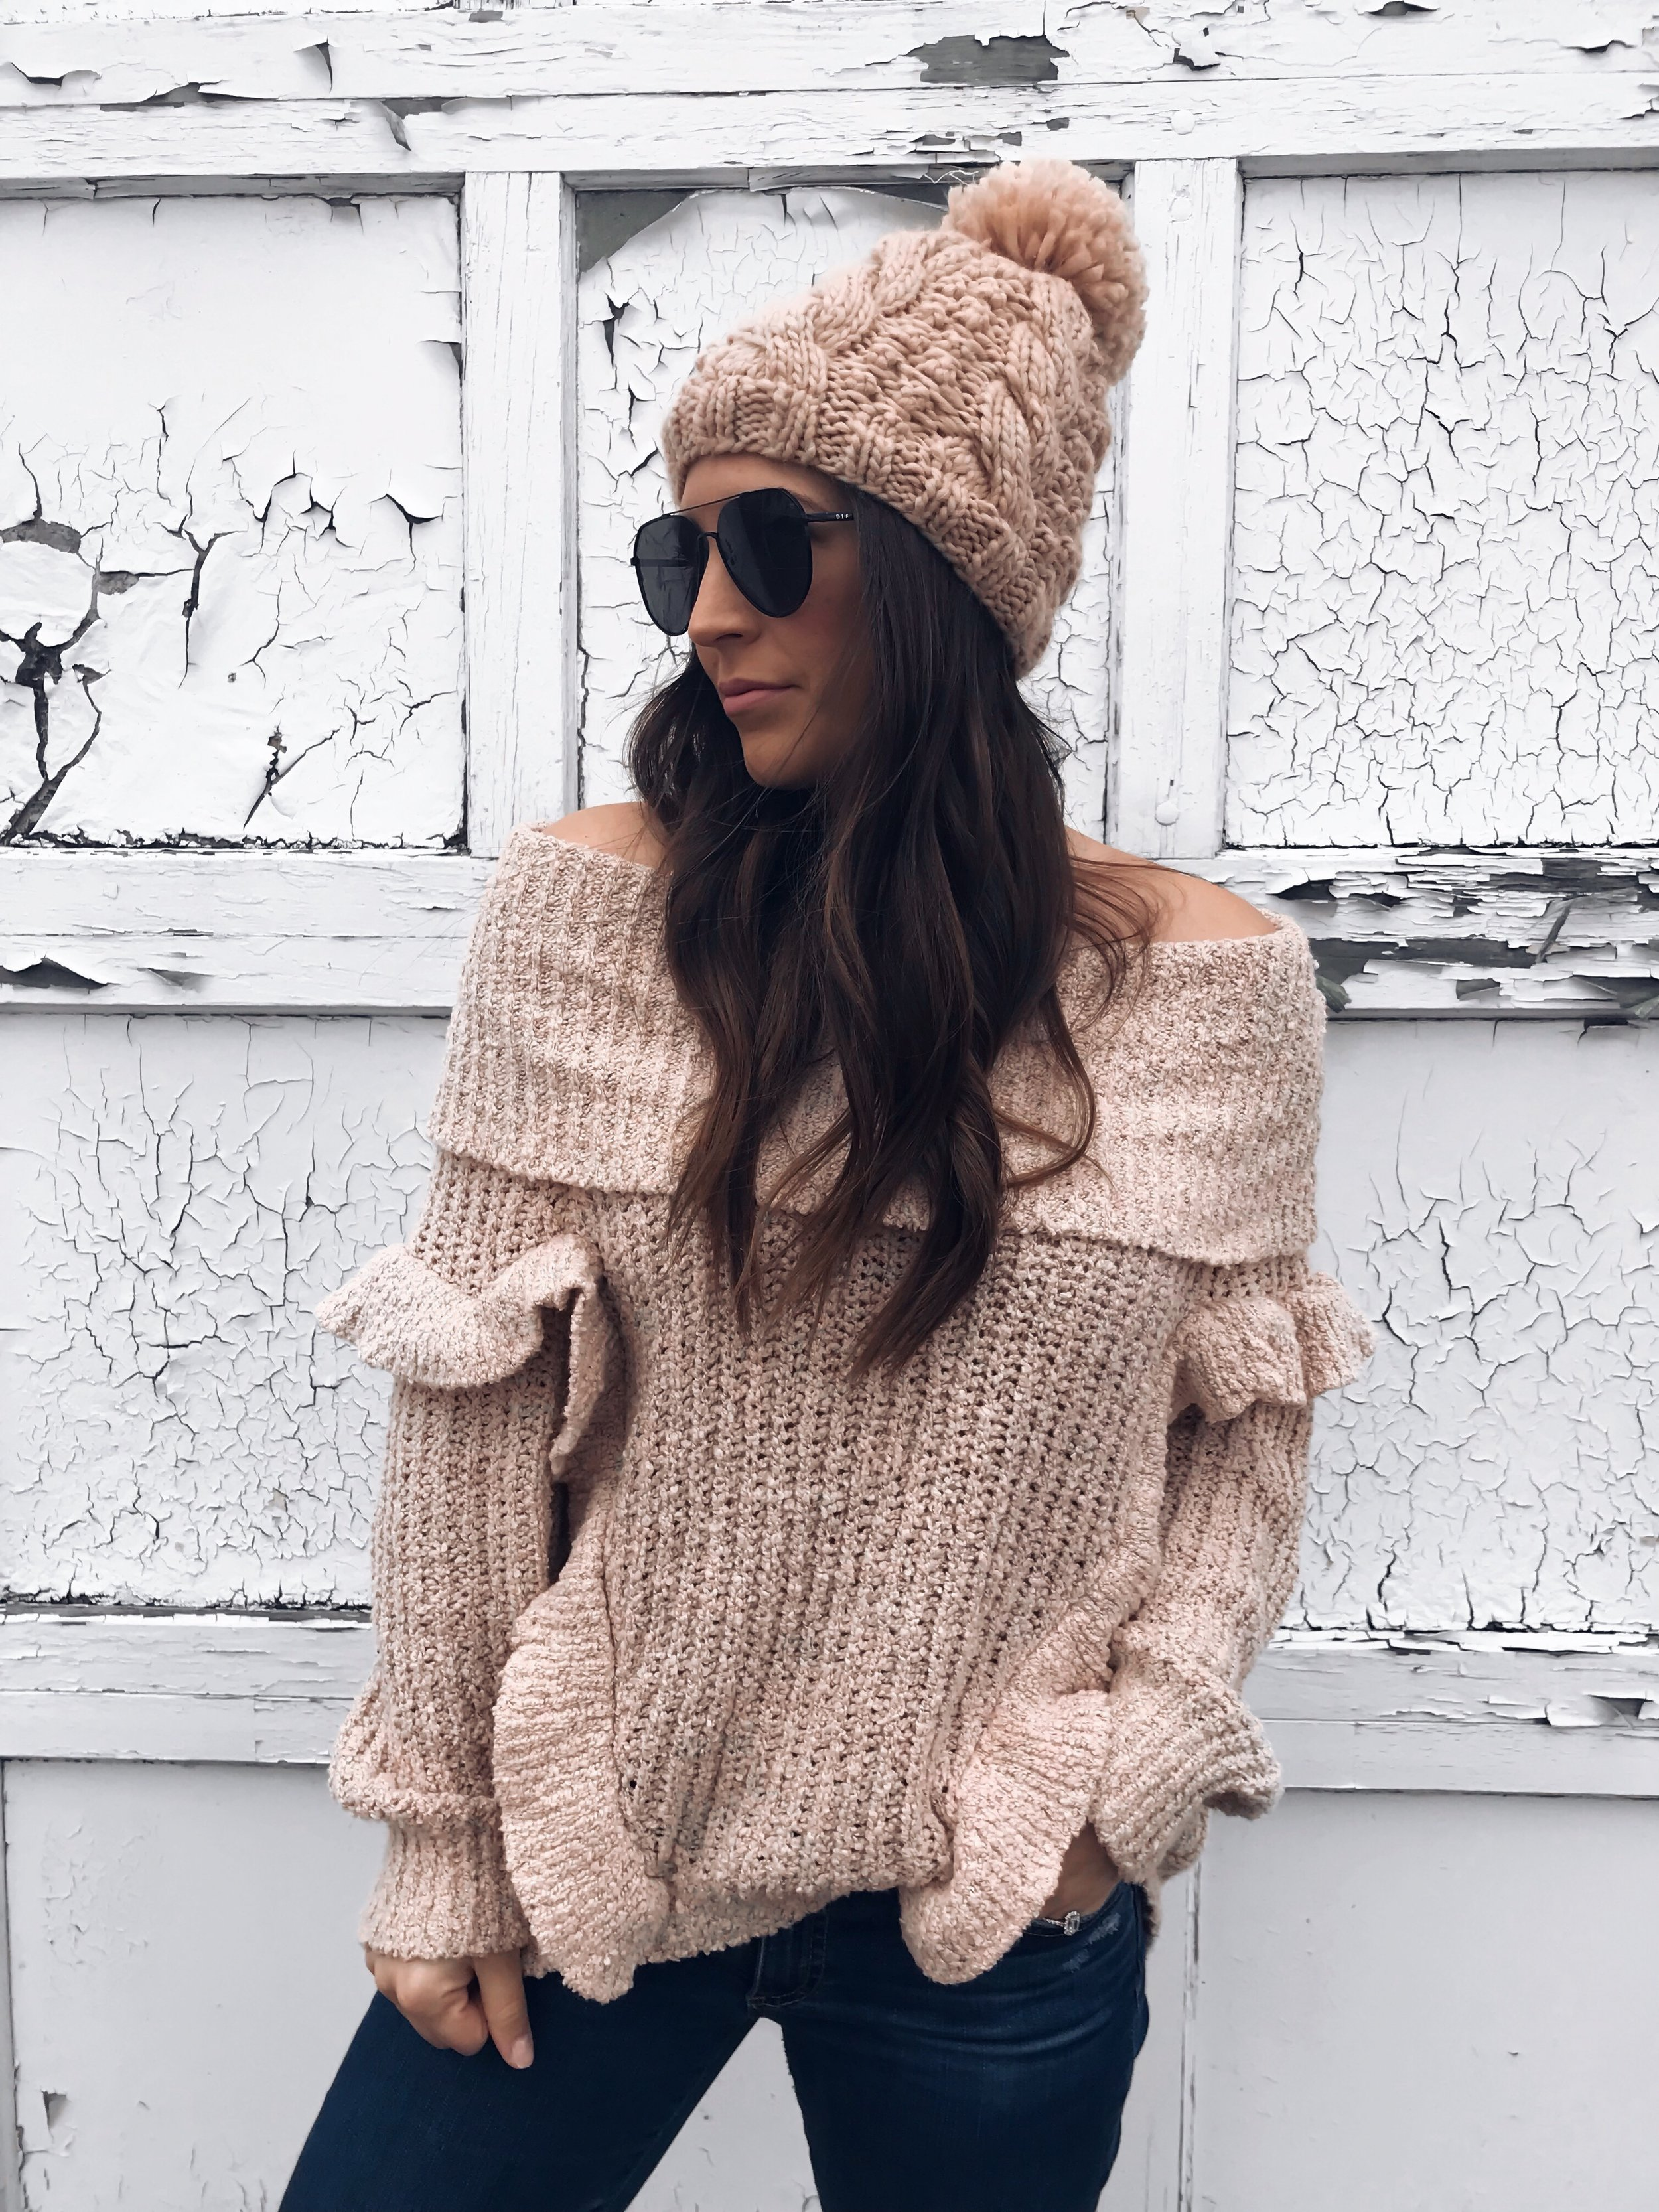 My Outfits That Are On Sale | Pine Barren Beauty | off the shoulder sweater, ruffle sweater, fall outfit idea, casual outfit idea, how to style a beanie, Black Friday sale